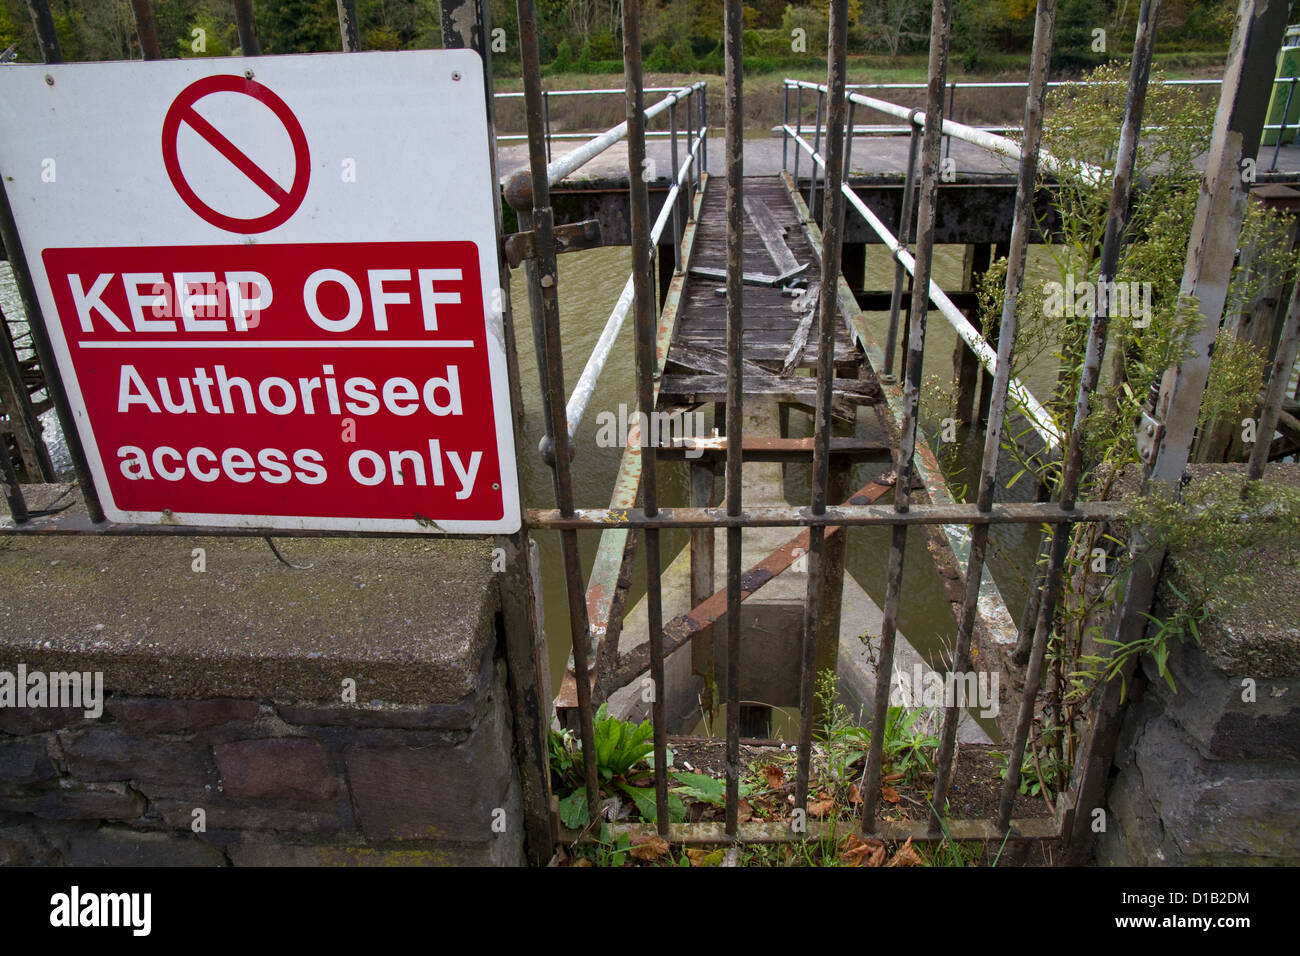 A sign saying Keep Off Authorised Access Only prohibits entry to a gangway with a huge hole in it - Stock Image